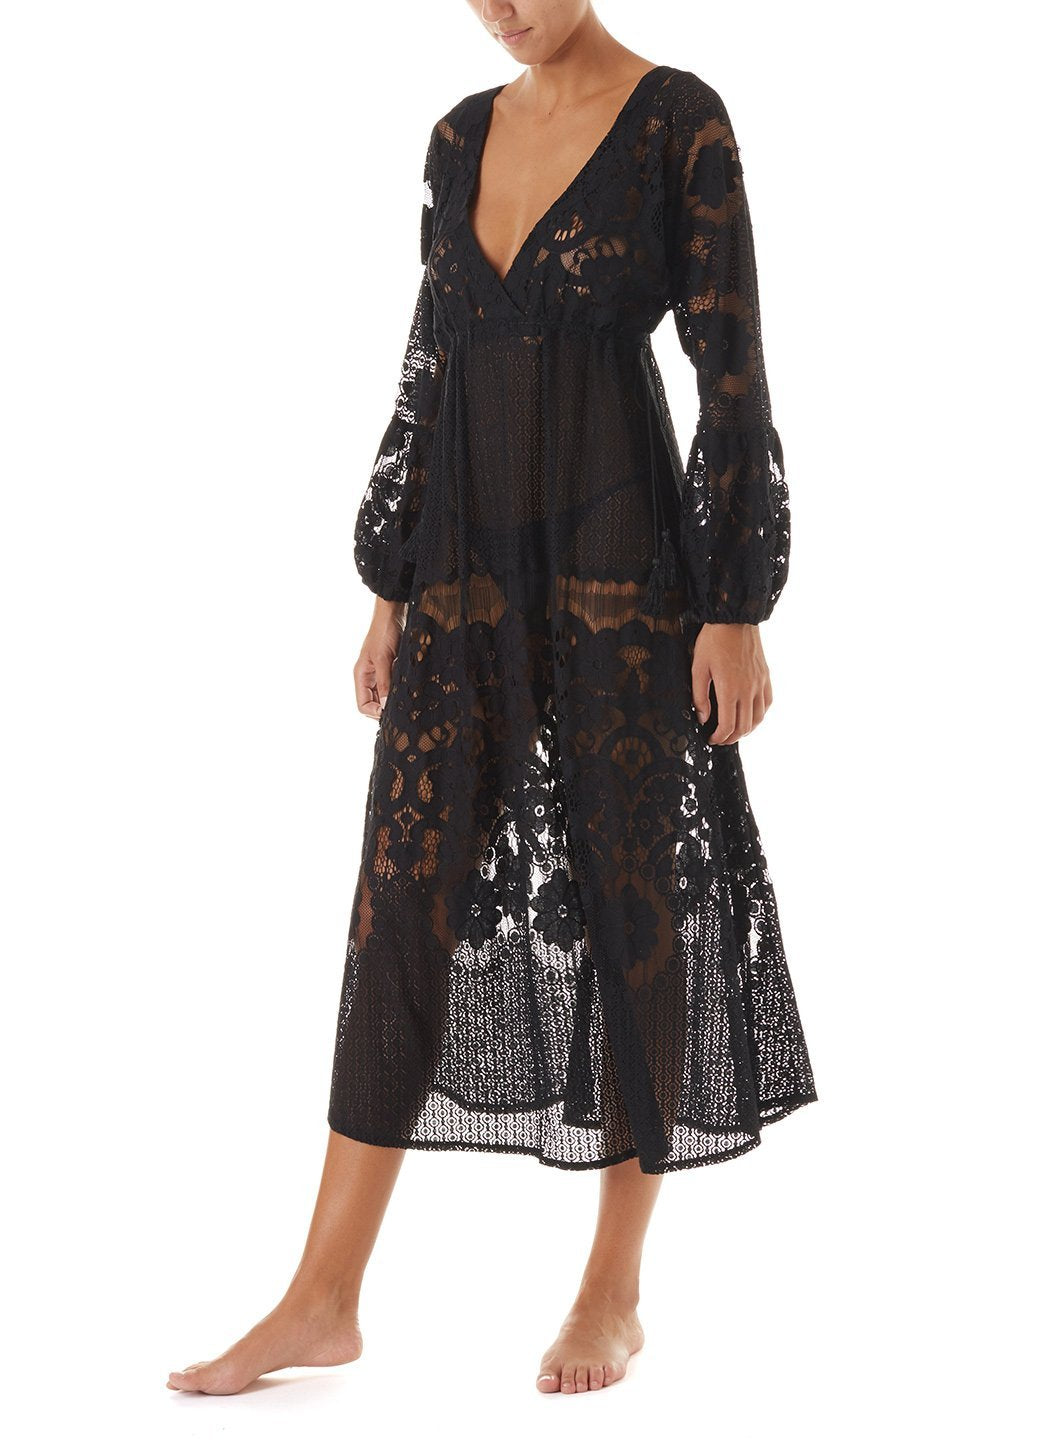 melissa black lace tieside midi dress 2019 F